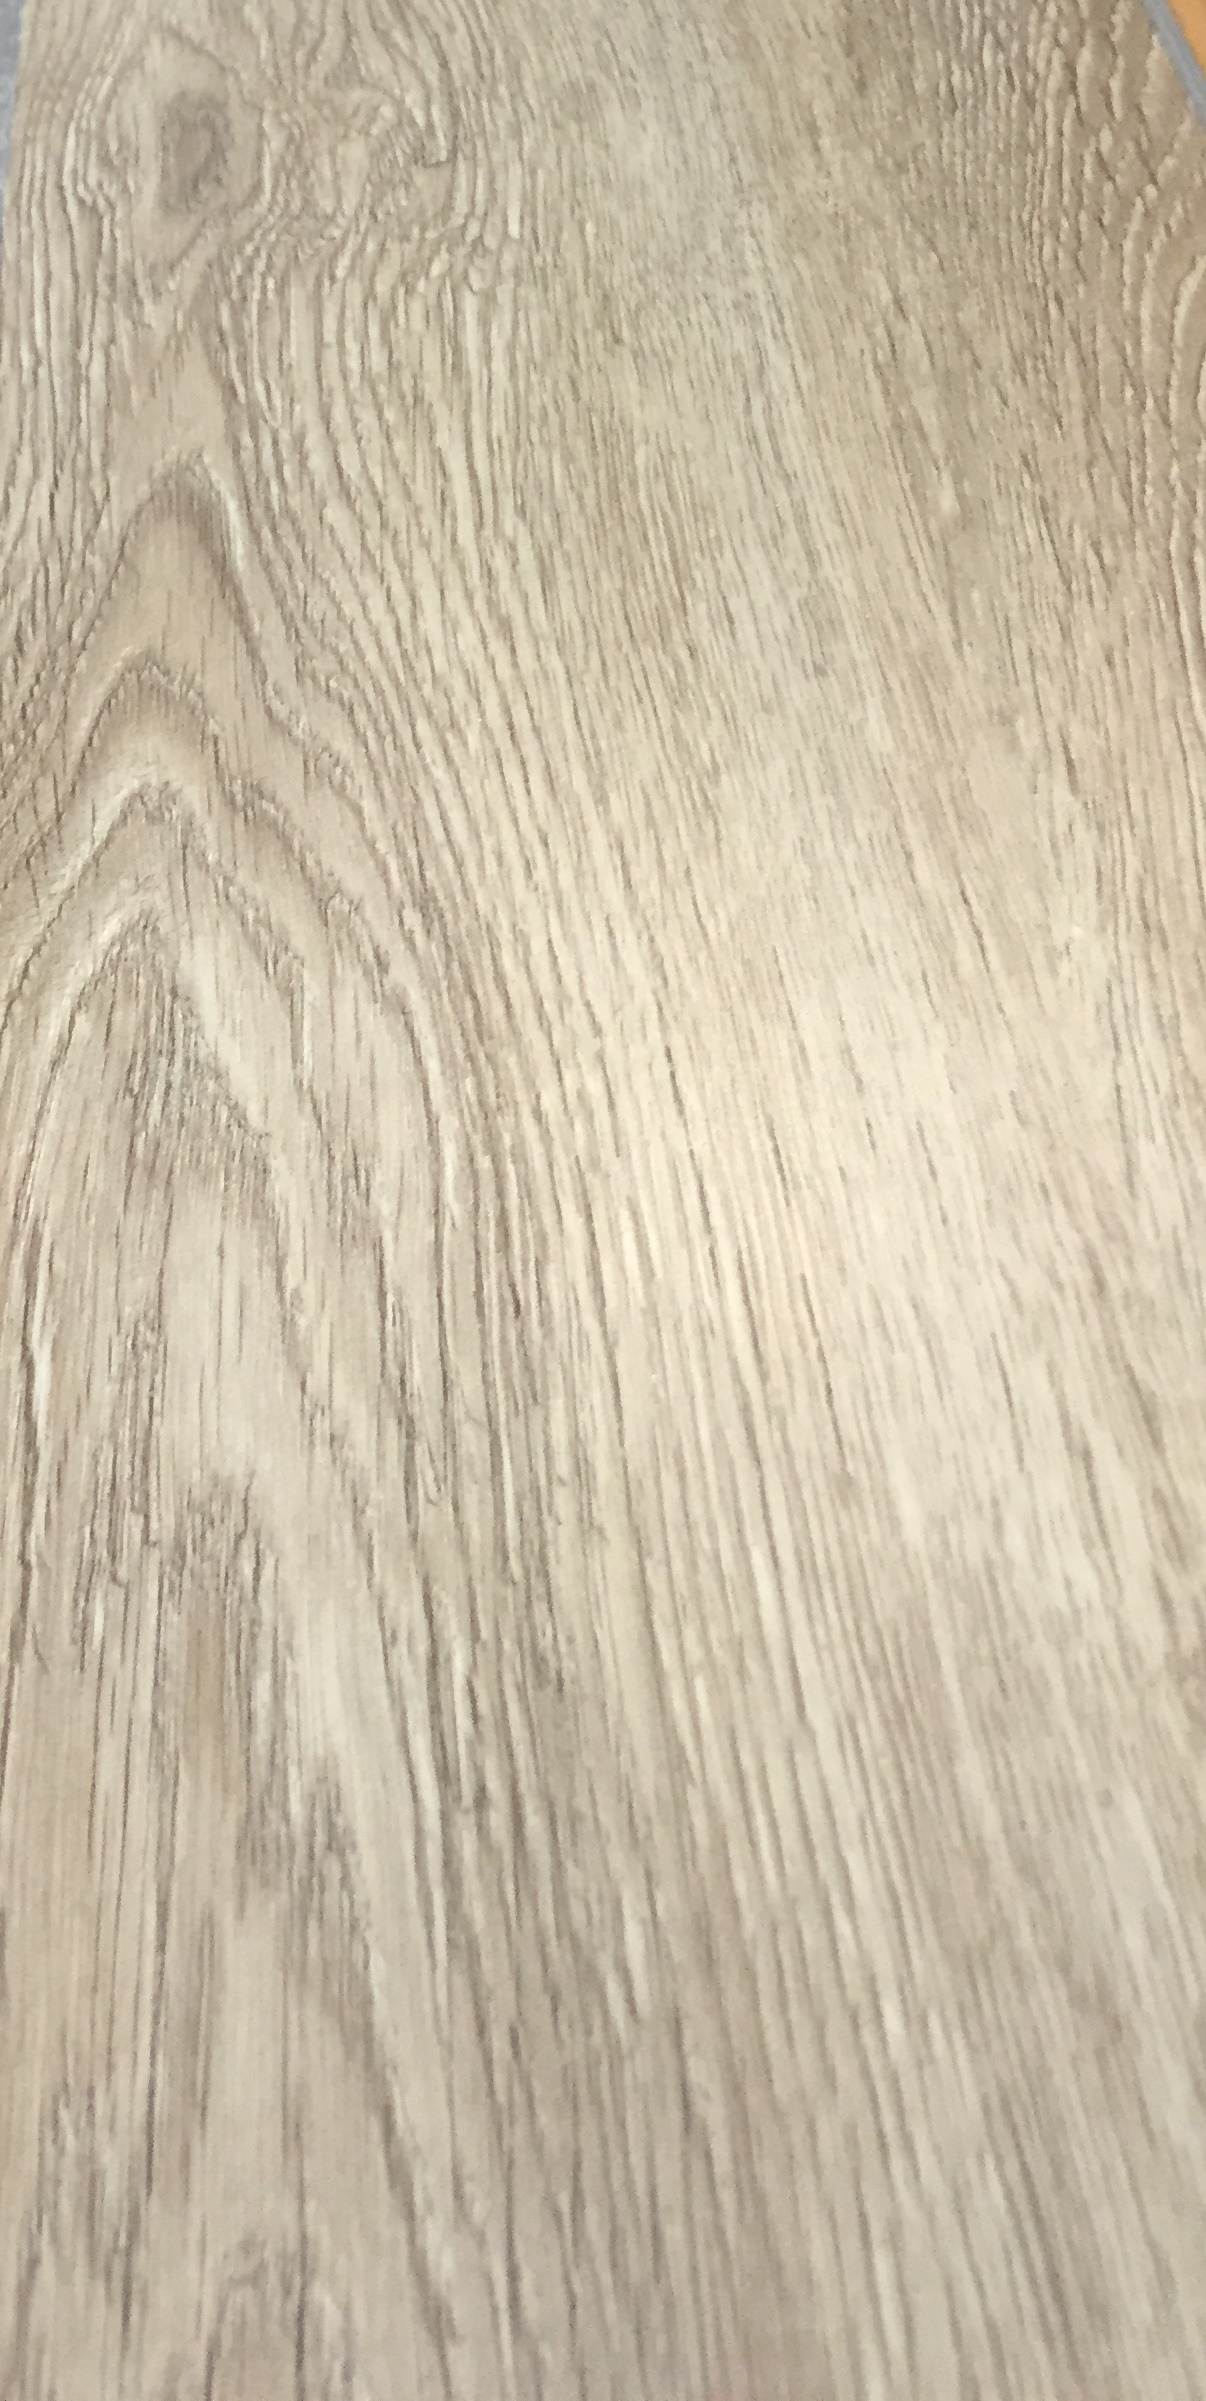 Luxury vinyl click no glue 5mm thickness canada for Luxury laminate